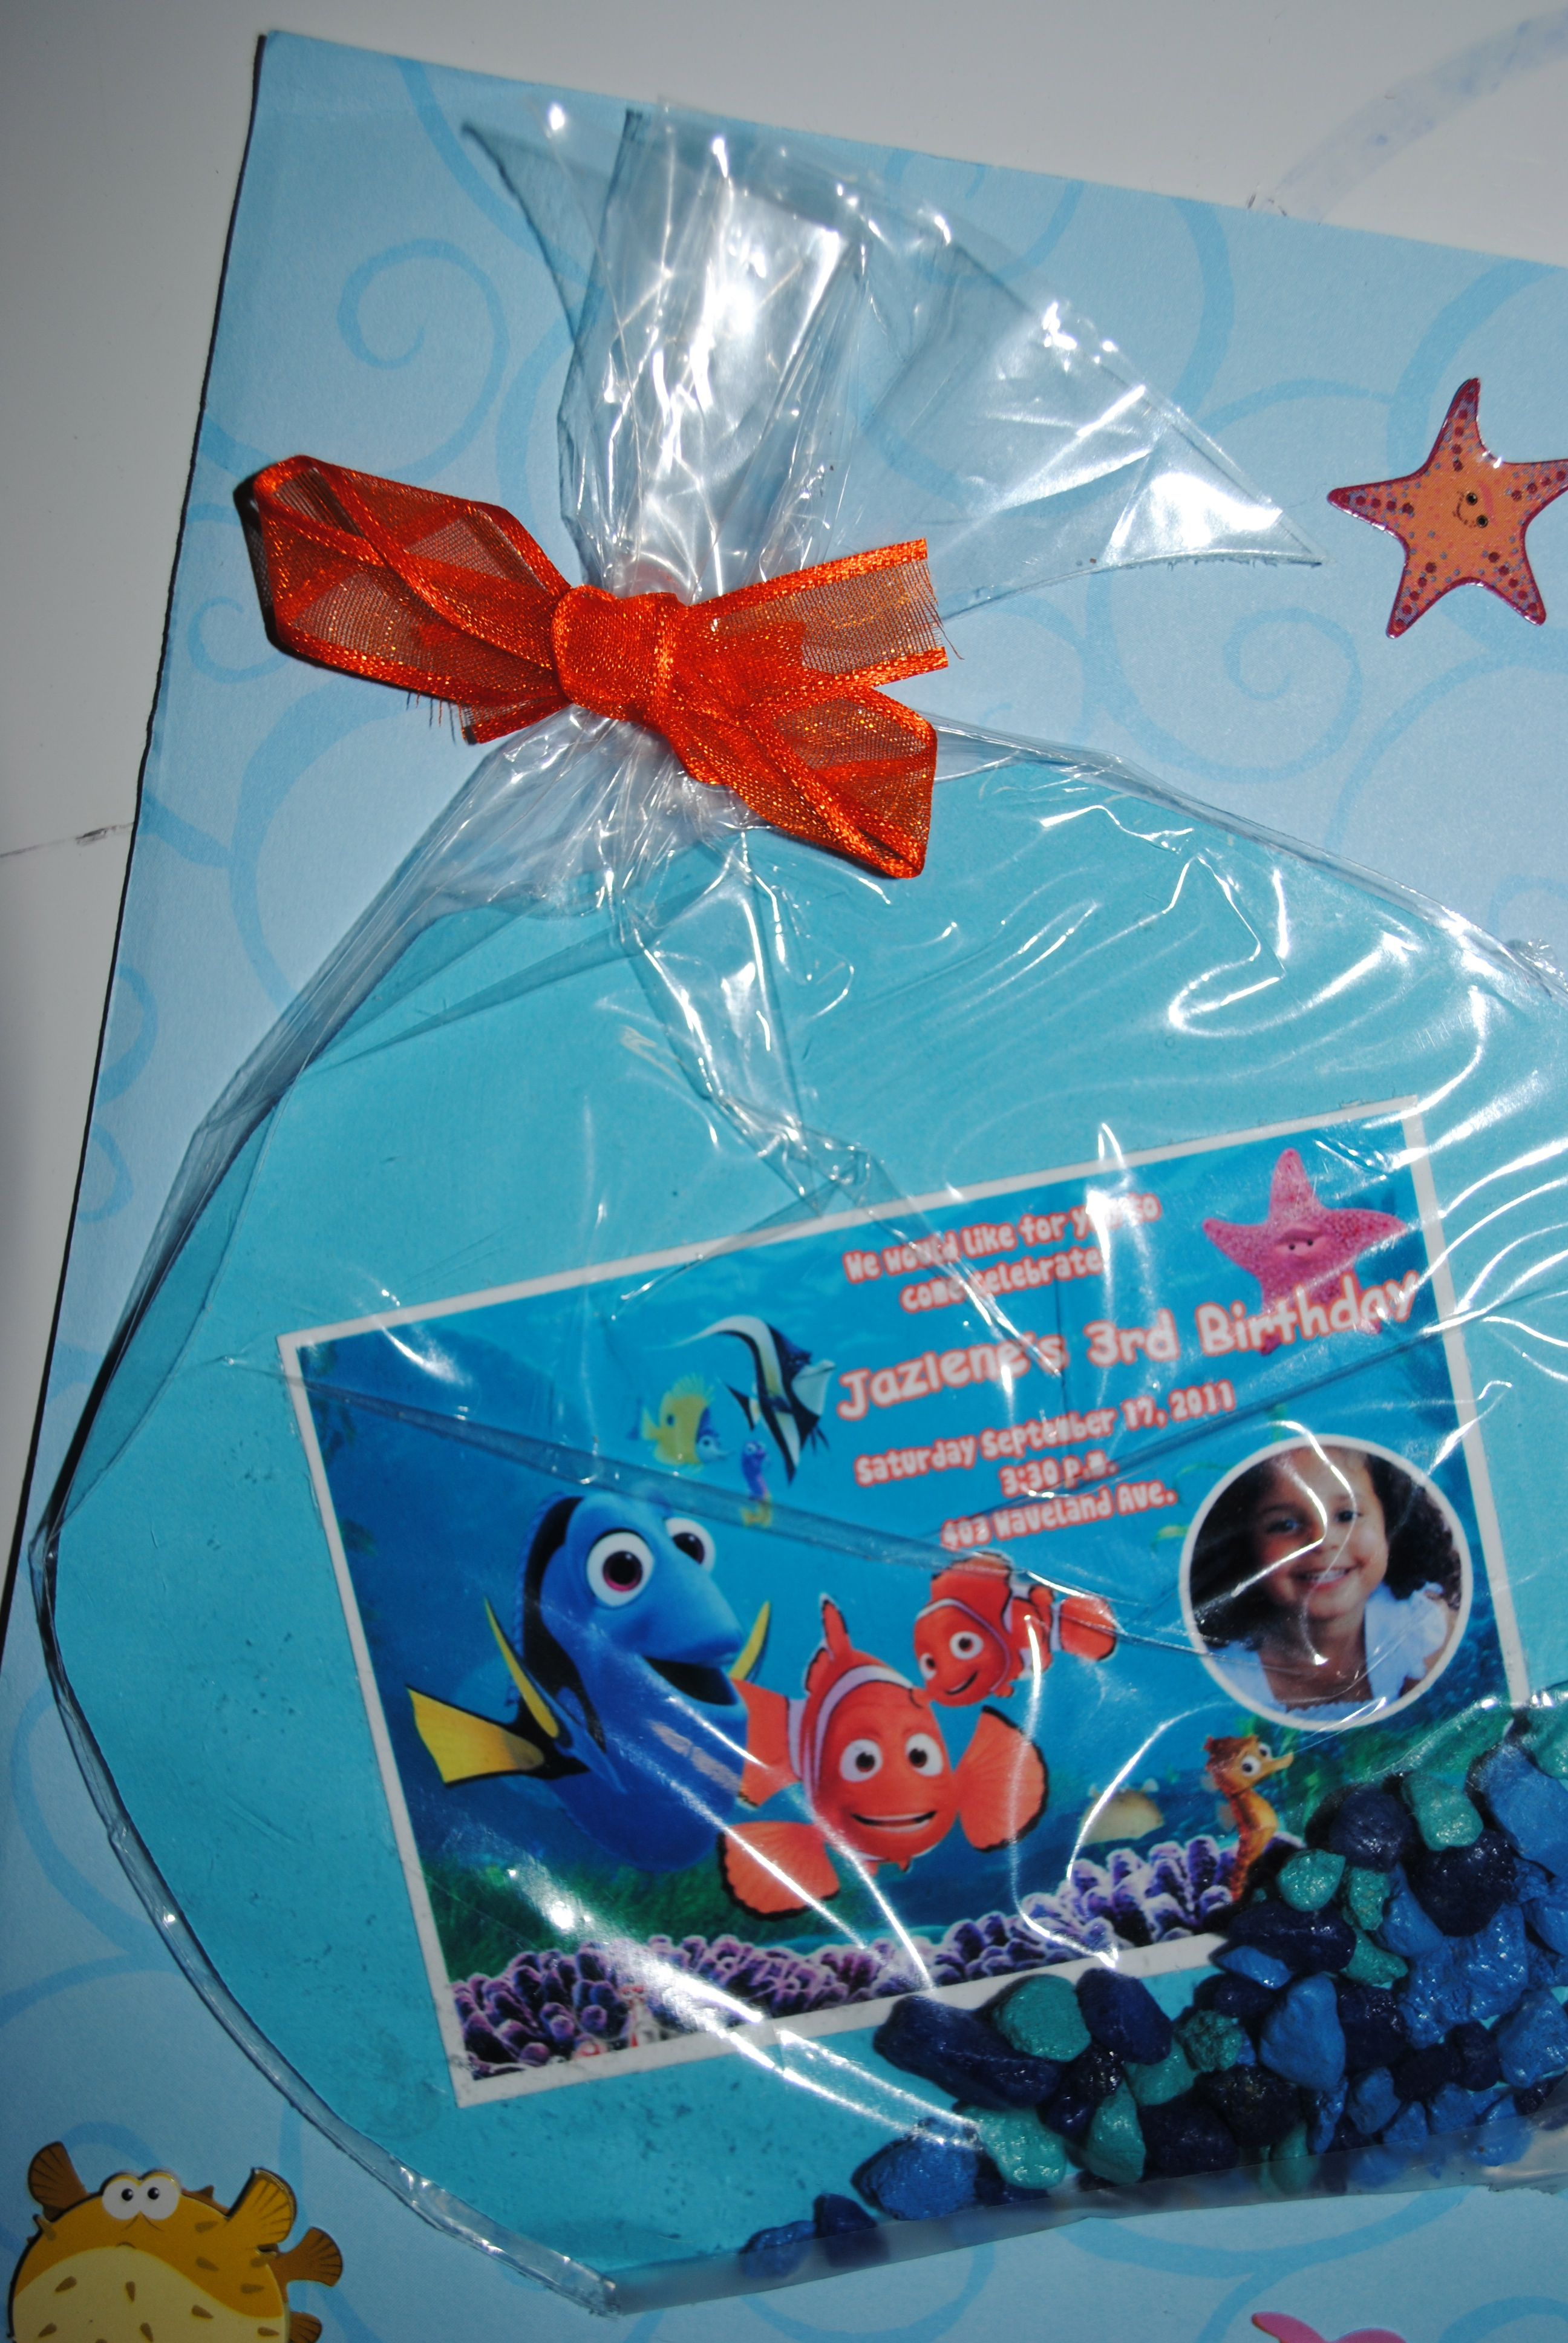 FINDING NEMO INVITATION | FINDING NEMO PARTY | Pinterest | Finding ...